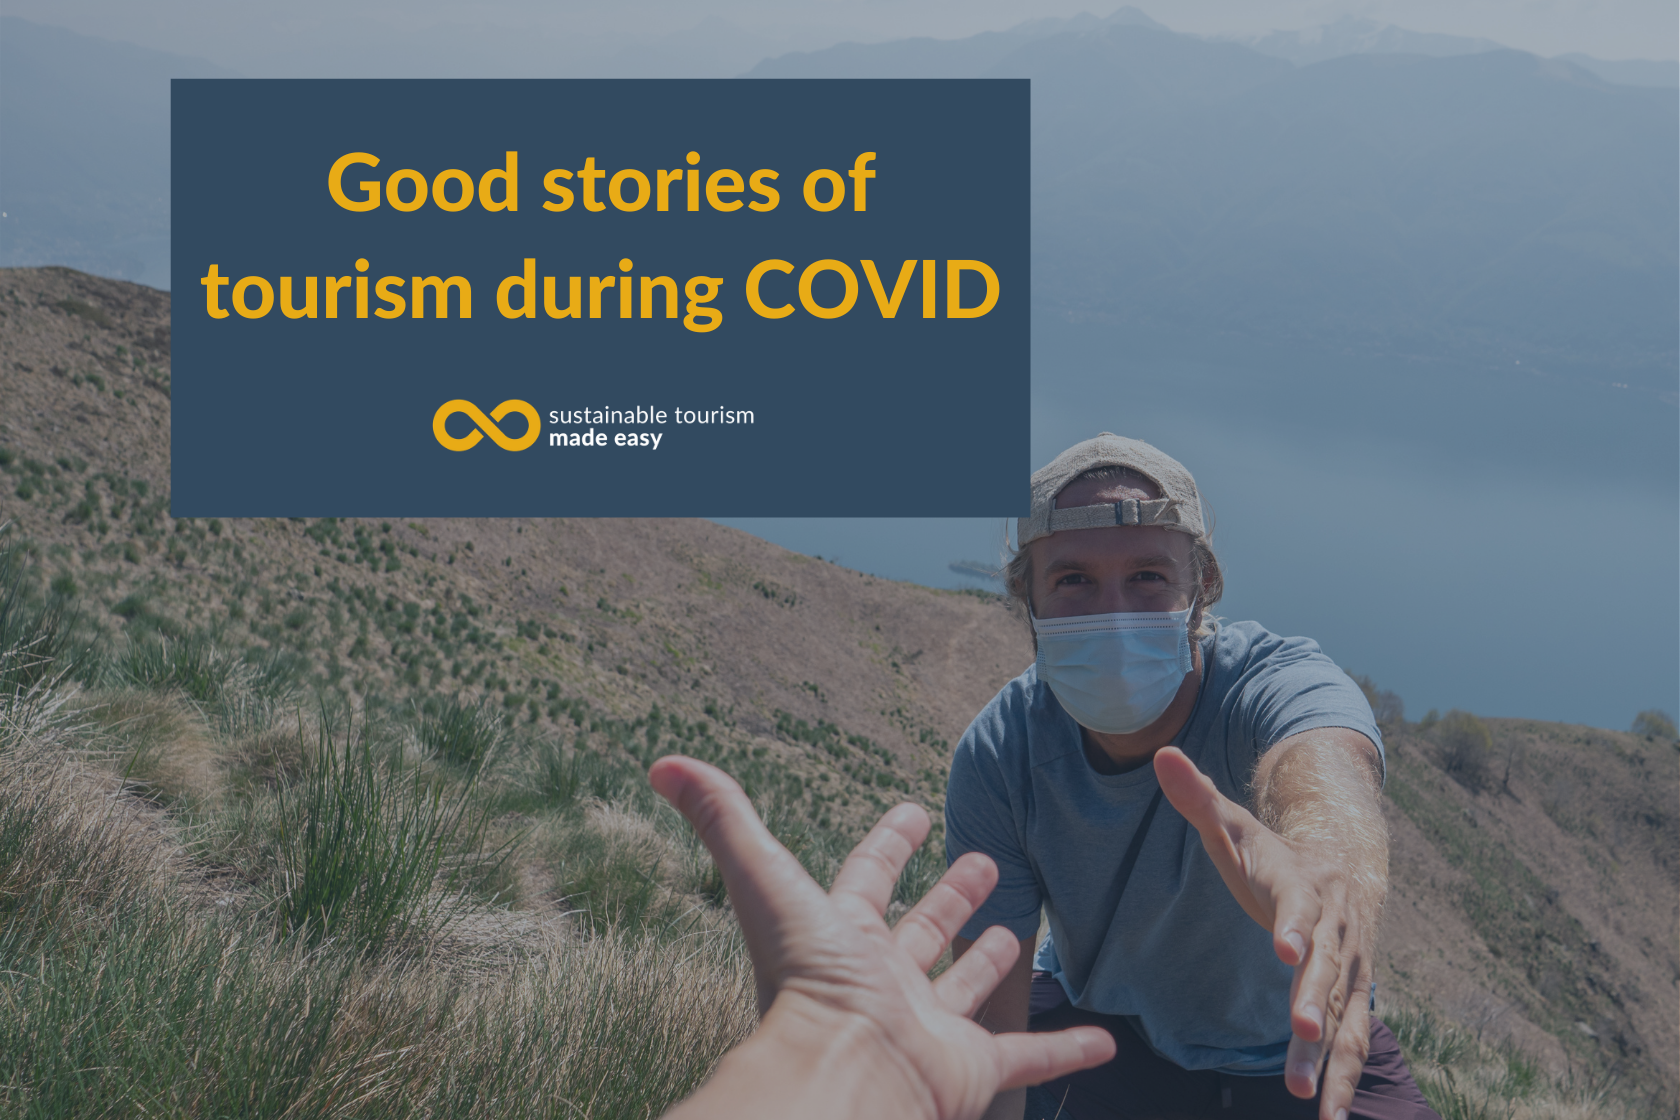 Good stories of tourism during COVID